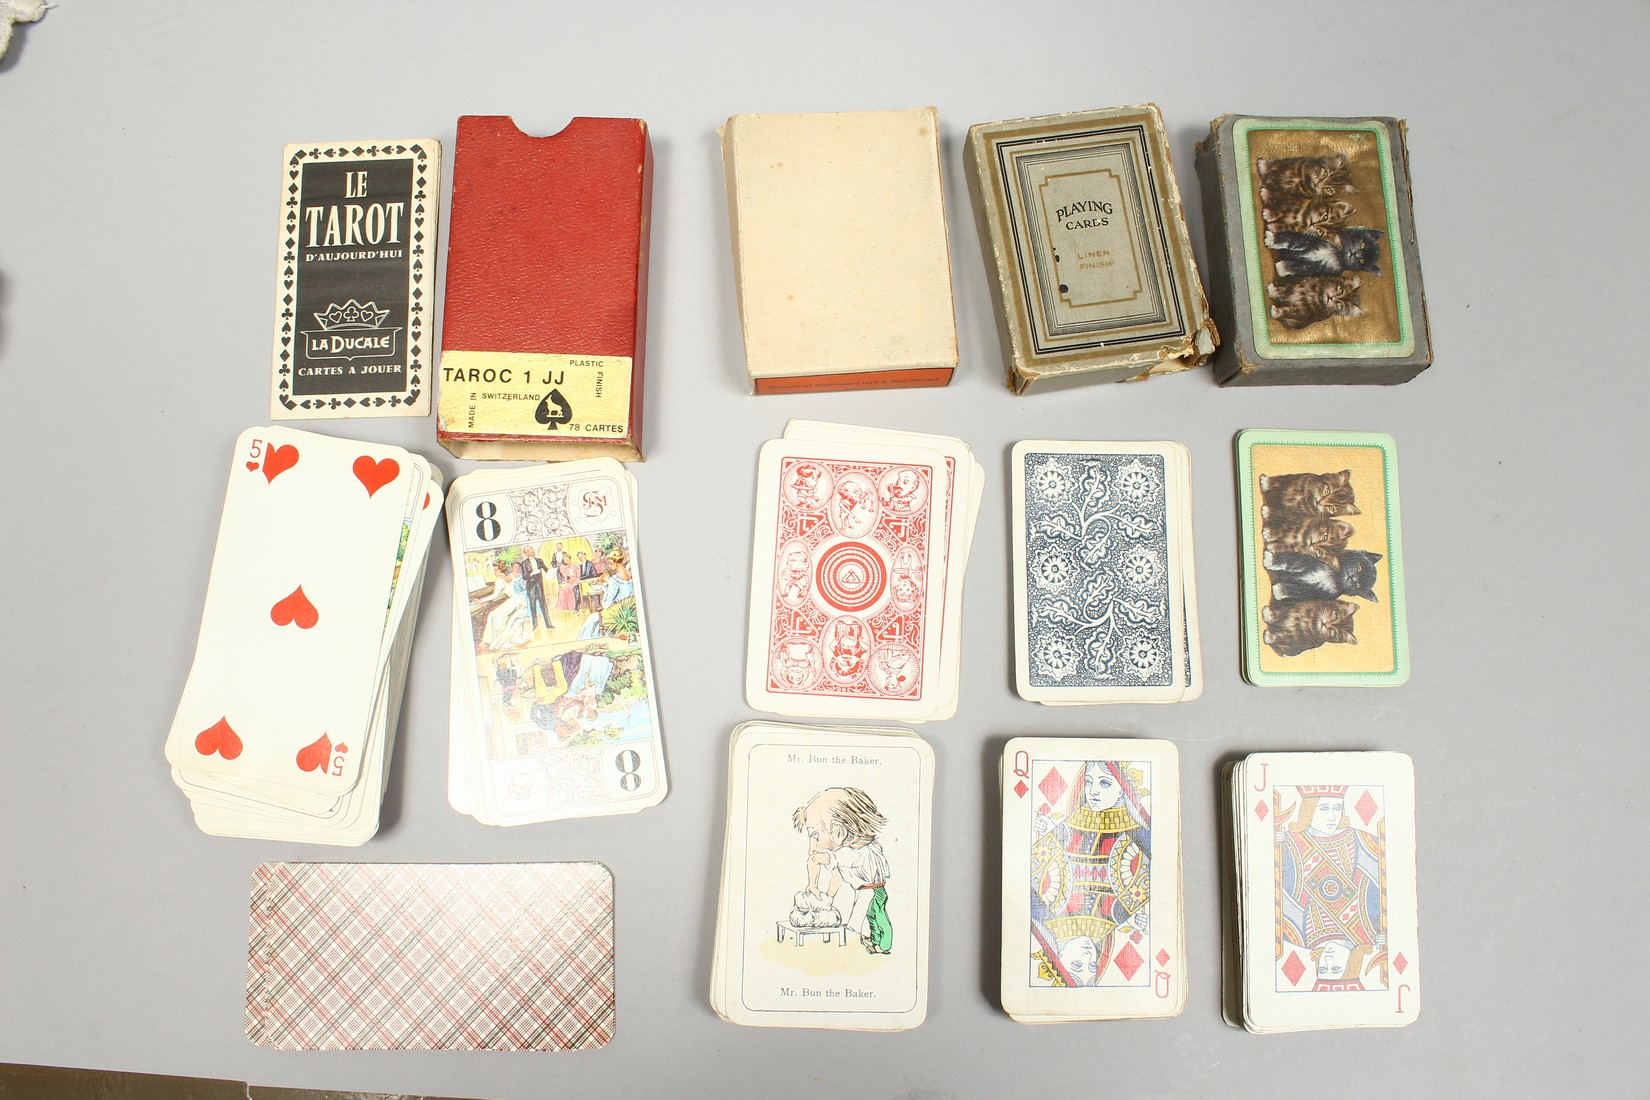 A COLLECTION OF VARIOUS PLAYING CARDS. - Image 15 of 16